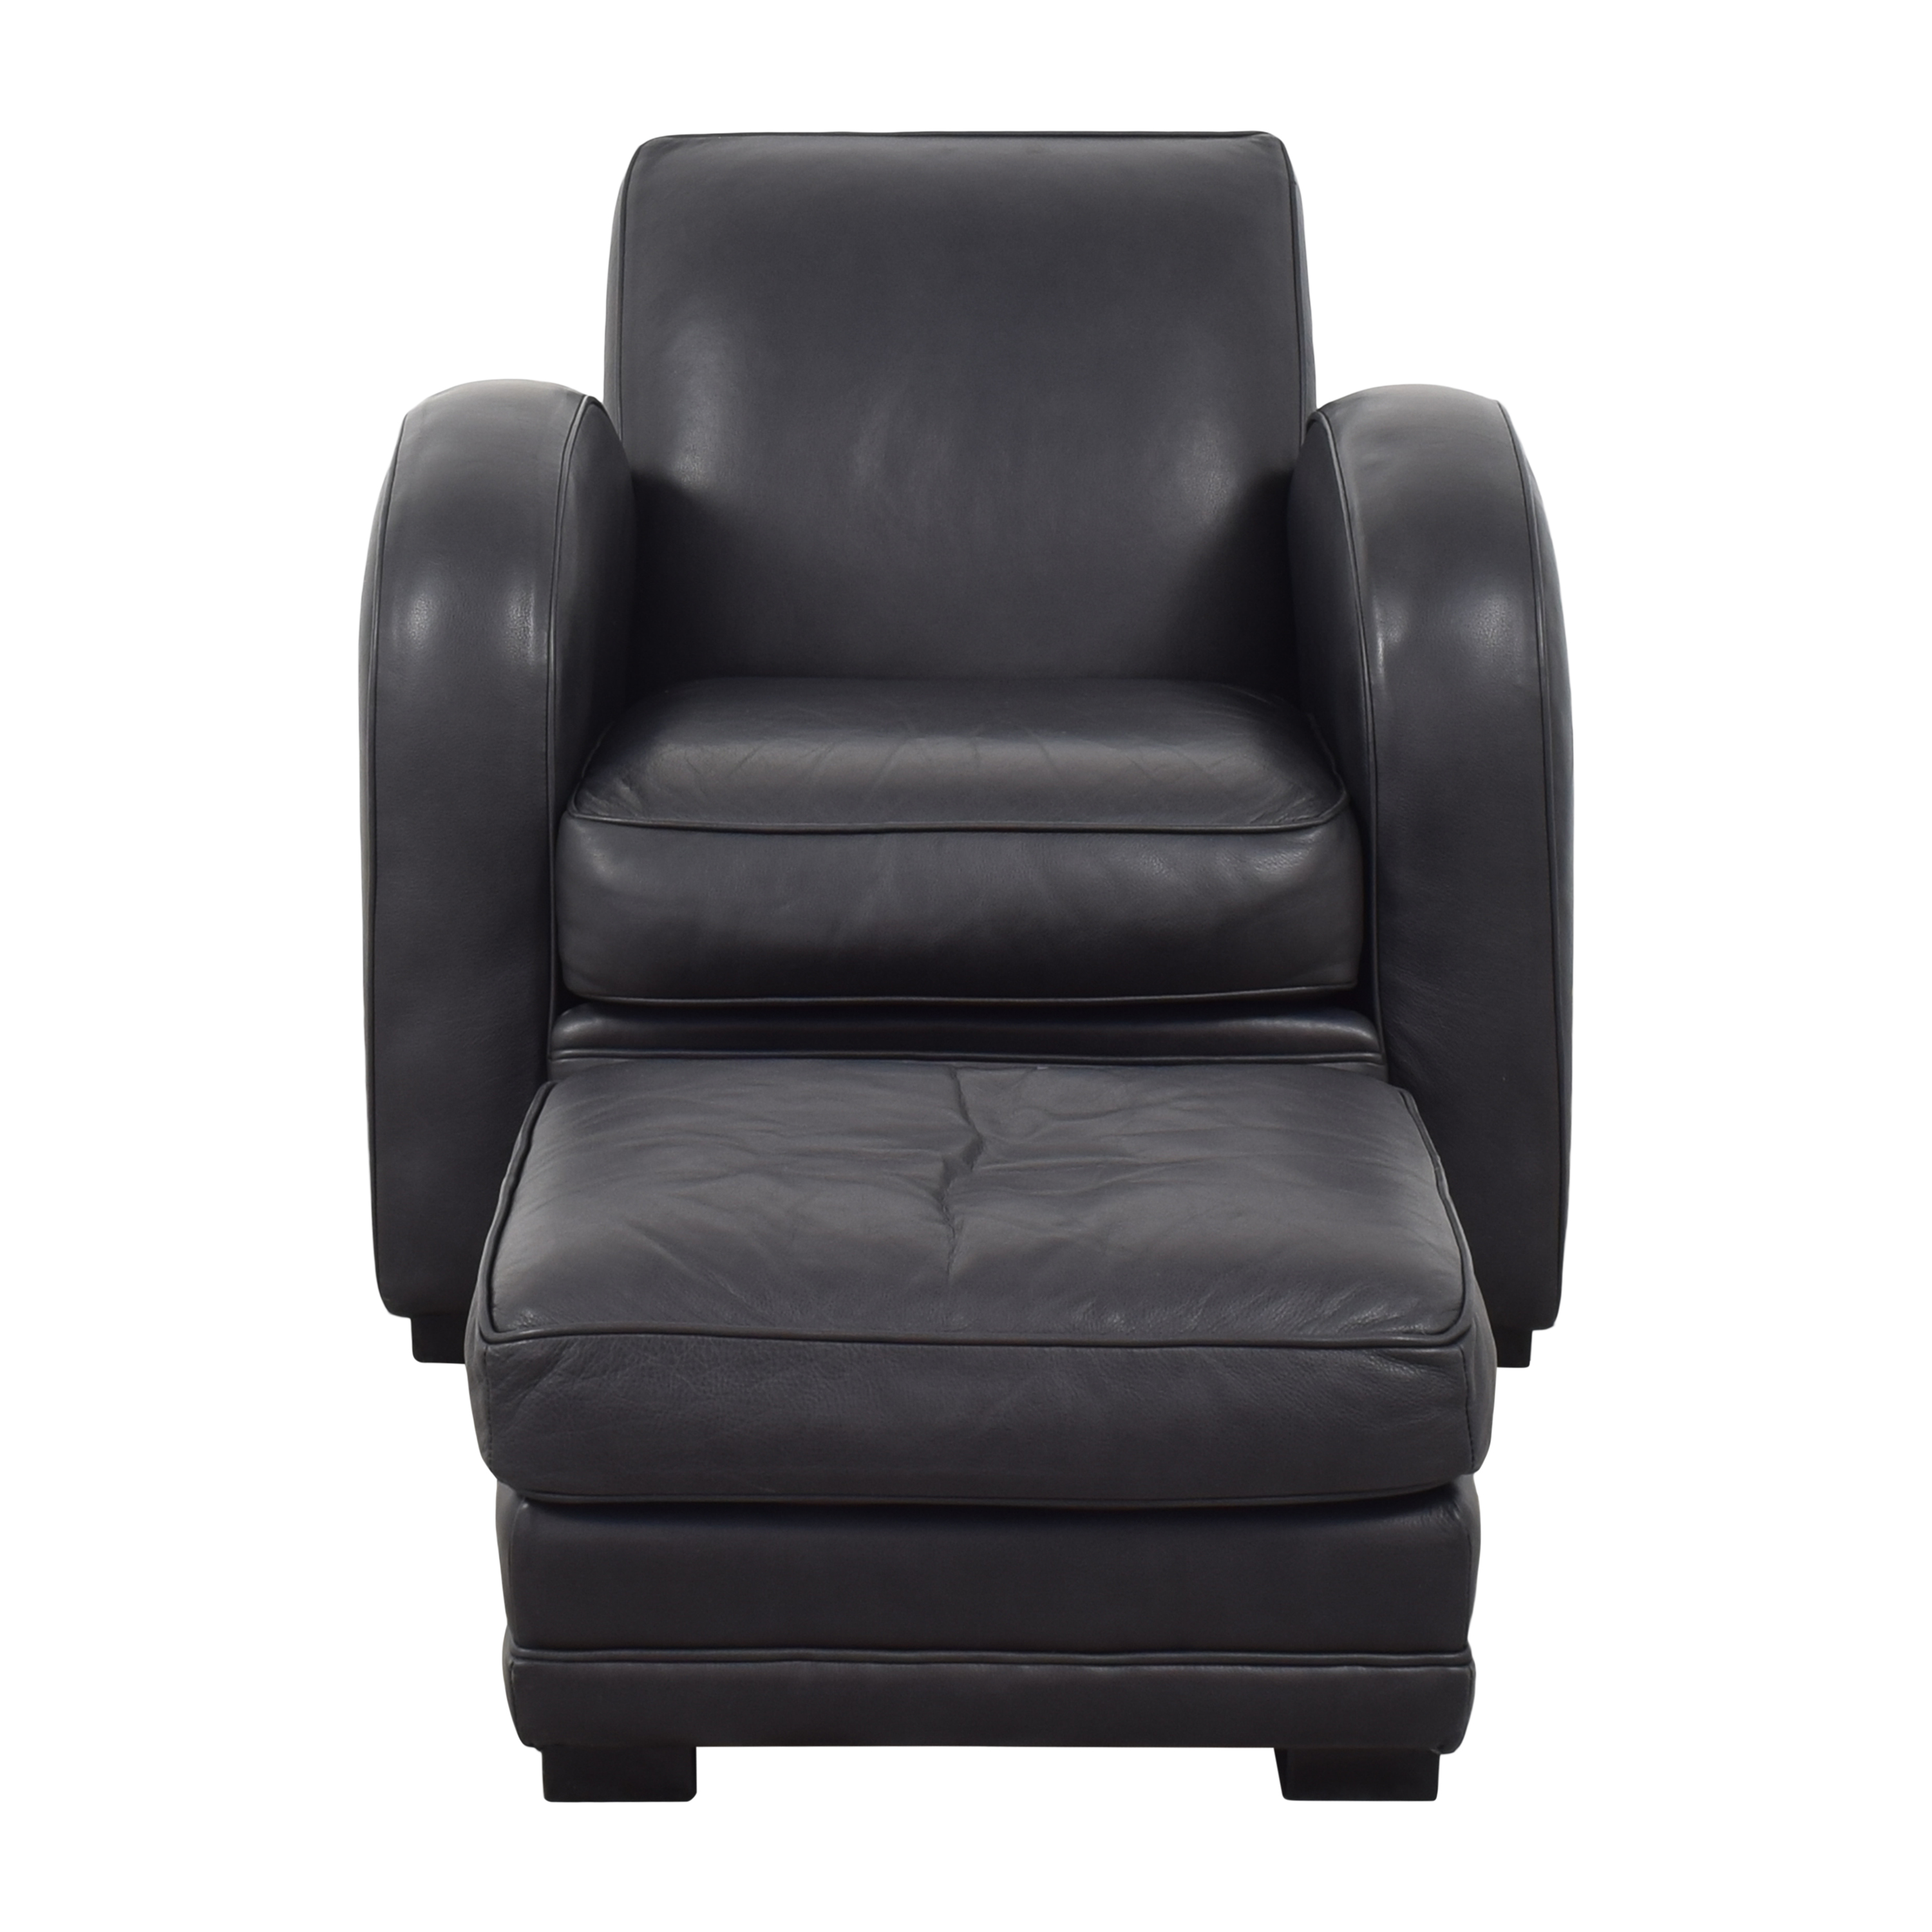 Room & Board Roadster Chair with Ottoman / Accent Chairs